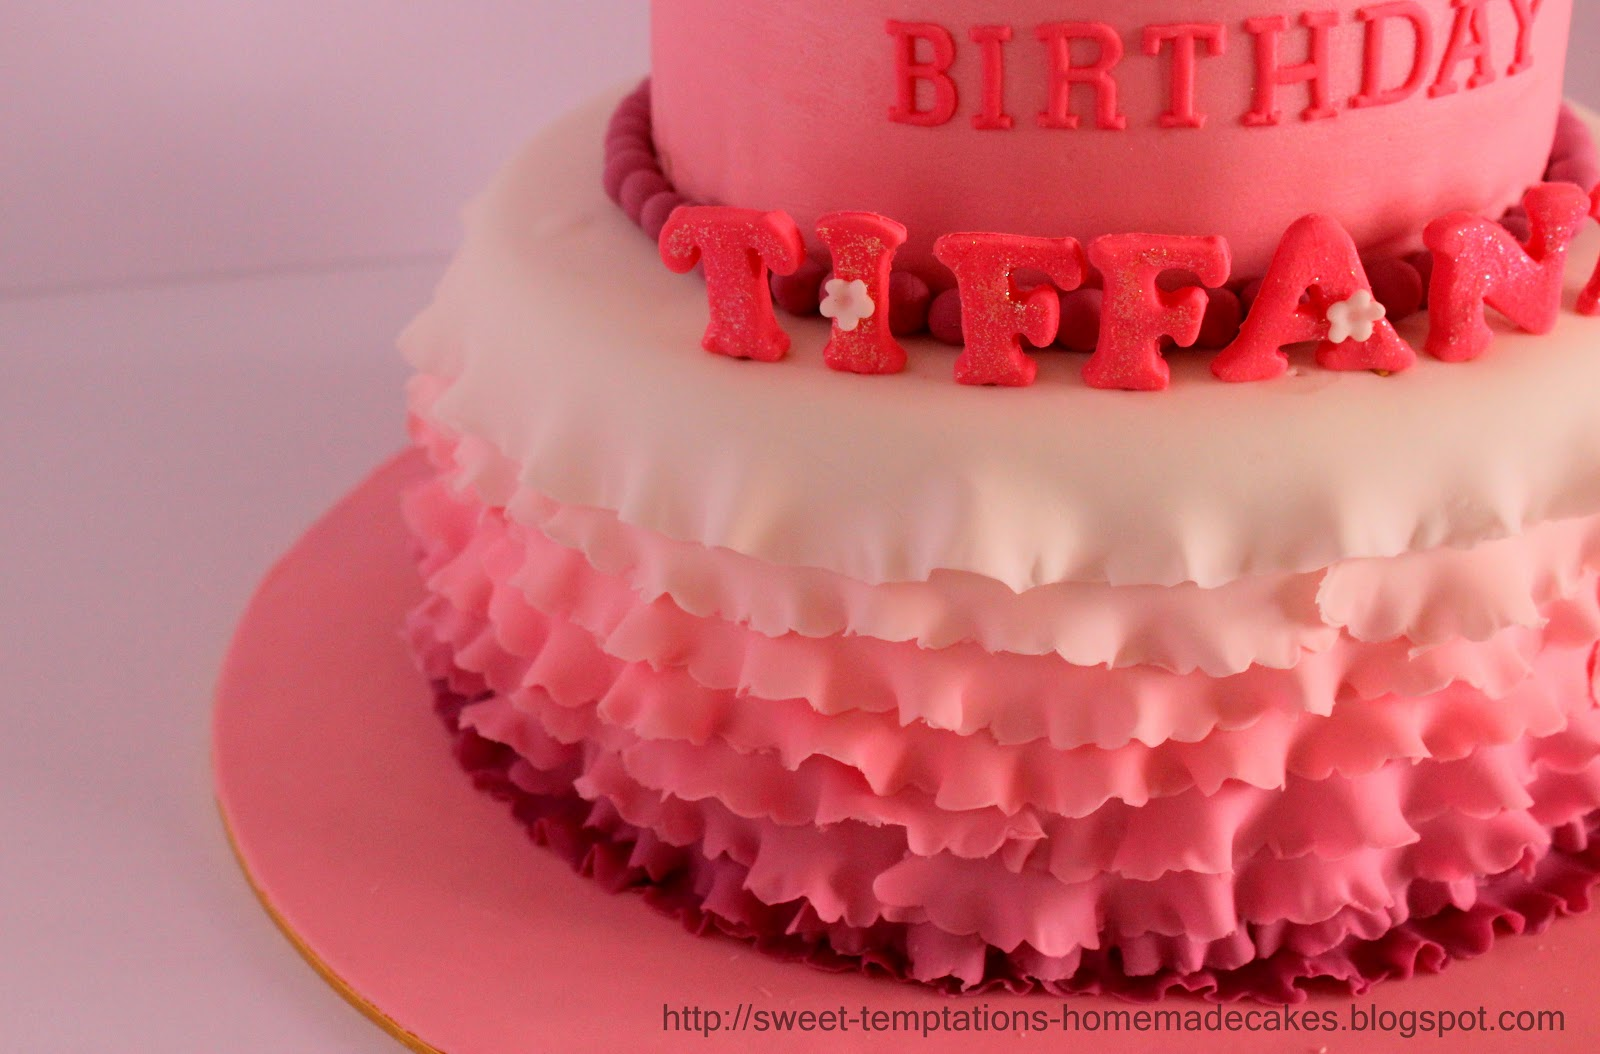 Sweet Temptations Homemade Cakes Pastry 1 Year Old Ruffle Cake